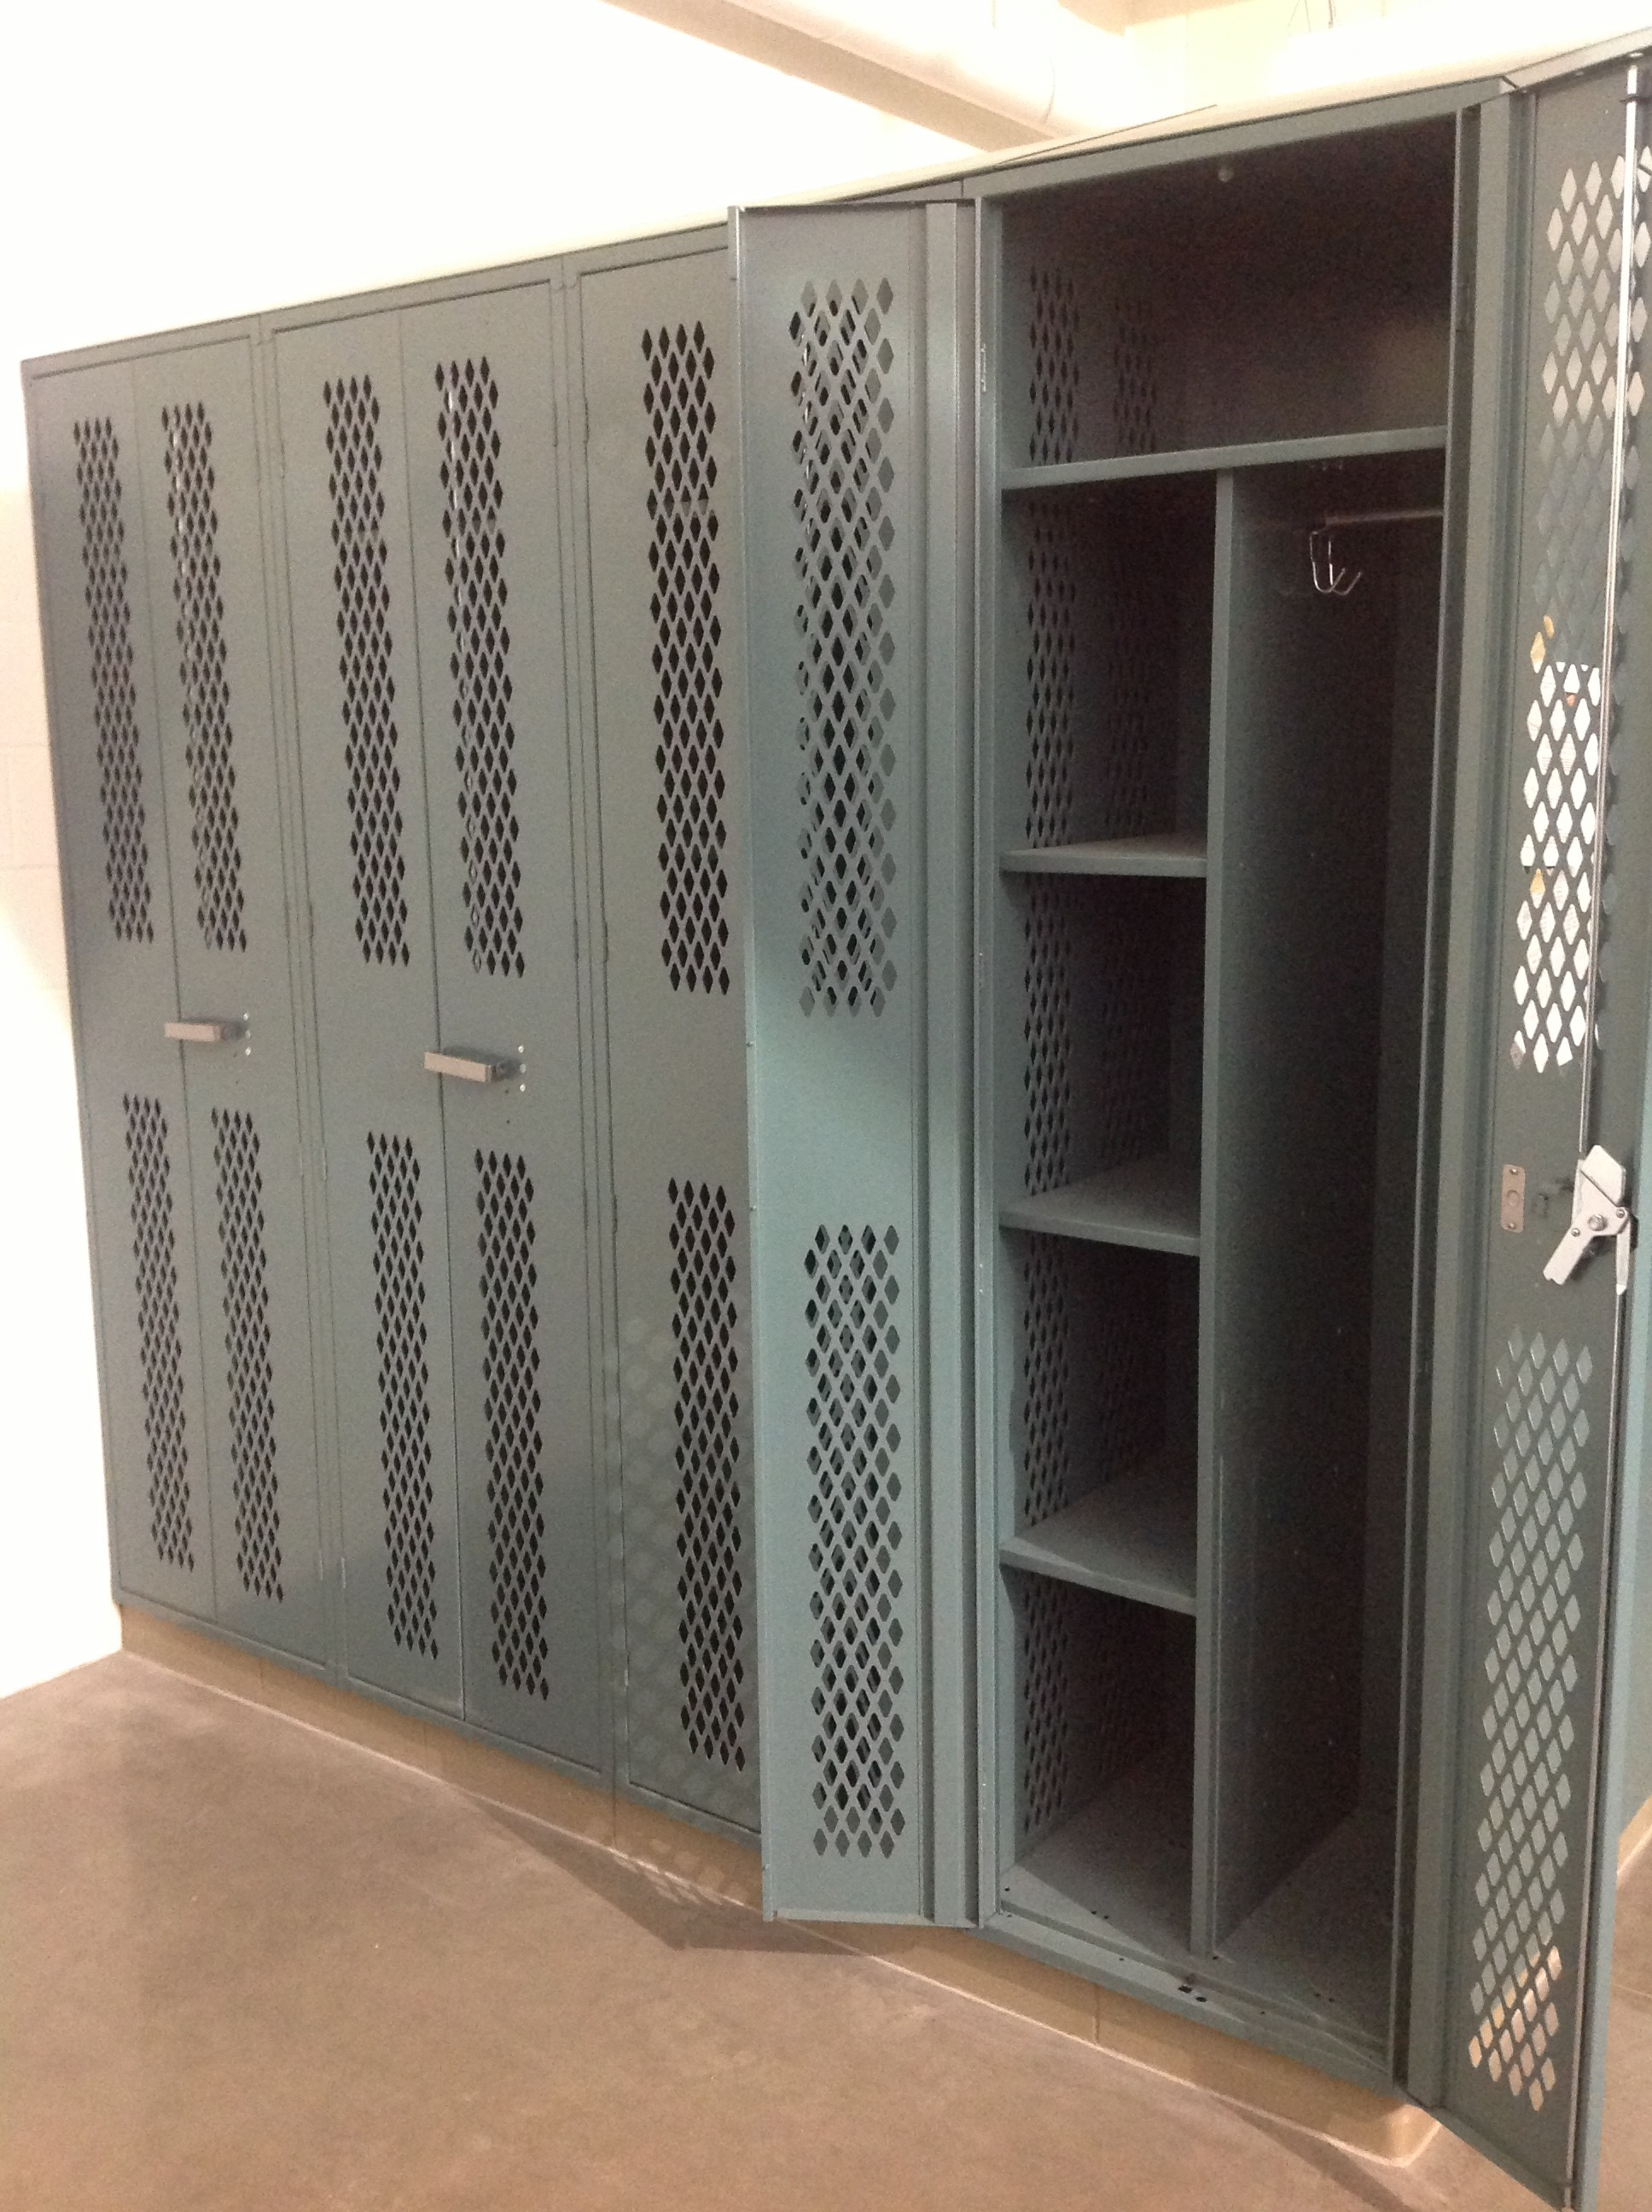 Brilliant Penco Lockers for Best Locker Choice: Penco Industries | Penco Lockers | Penco Careers